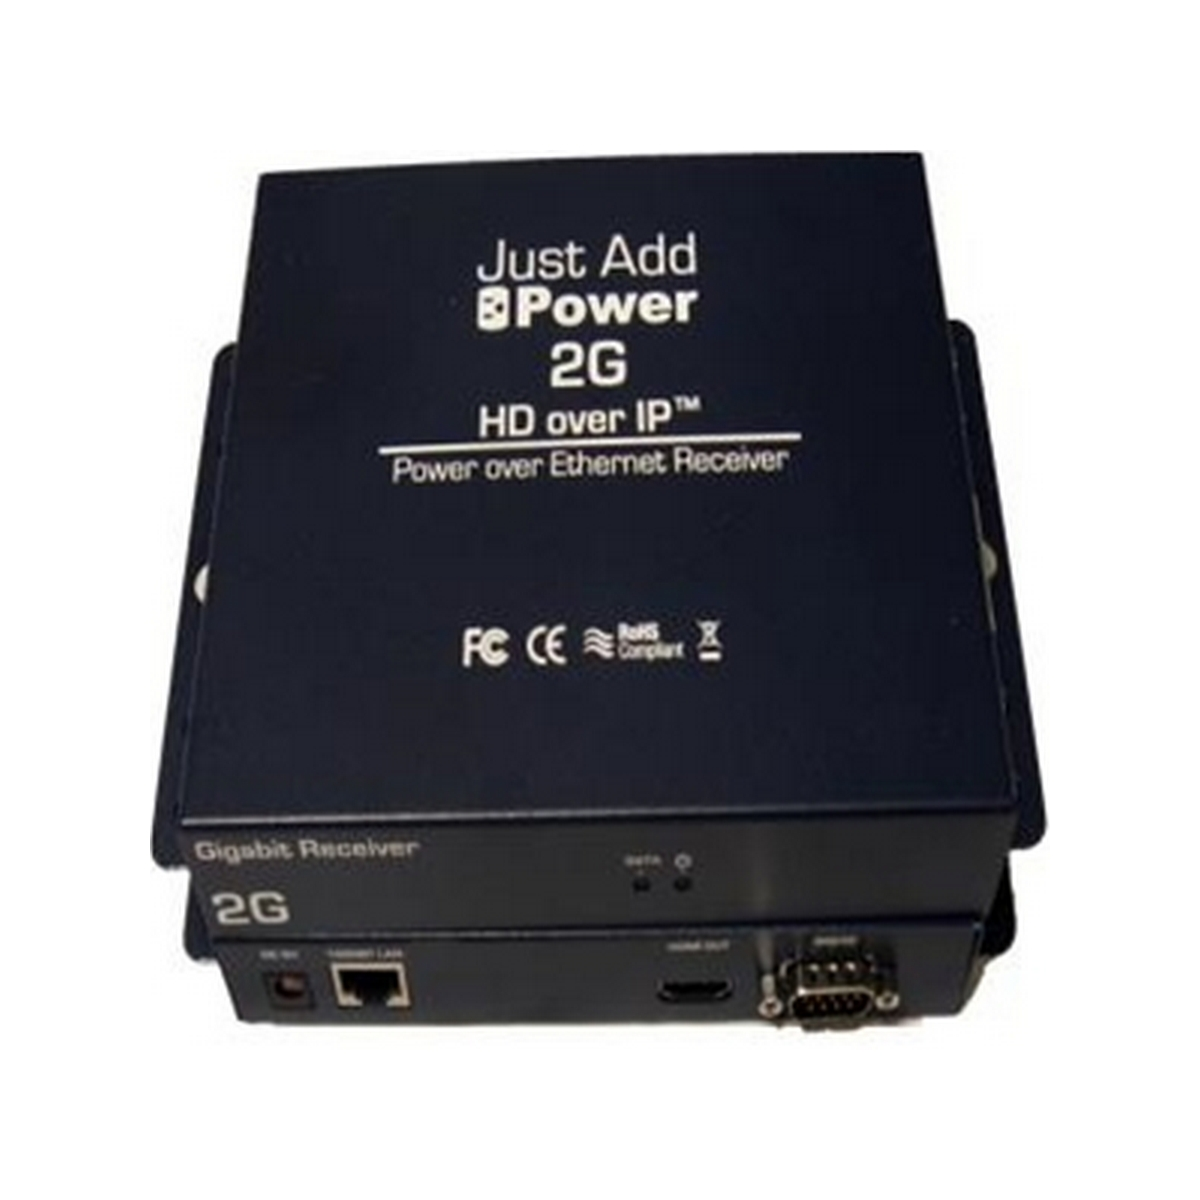 Just Add Power  VBS-HDMI-218POE  2G+PoE  Receiver